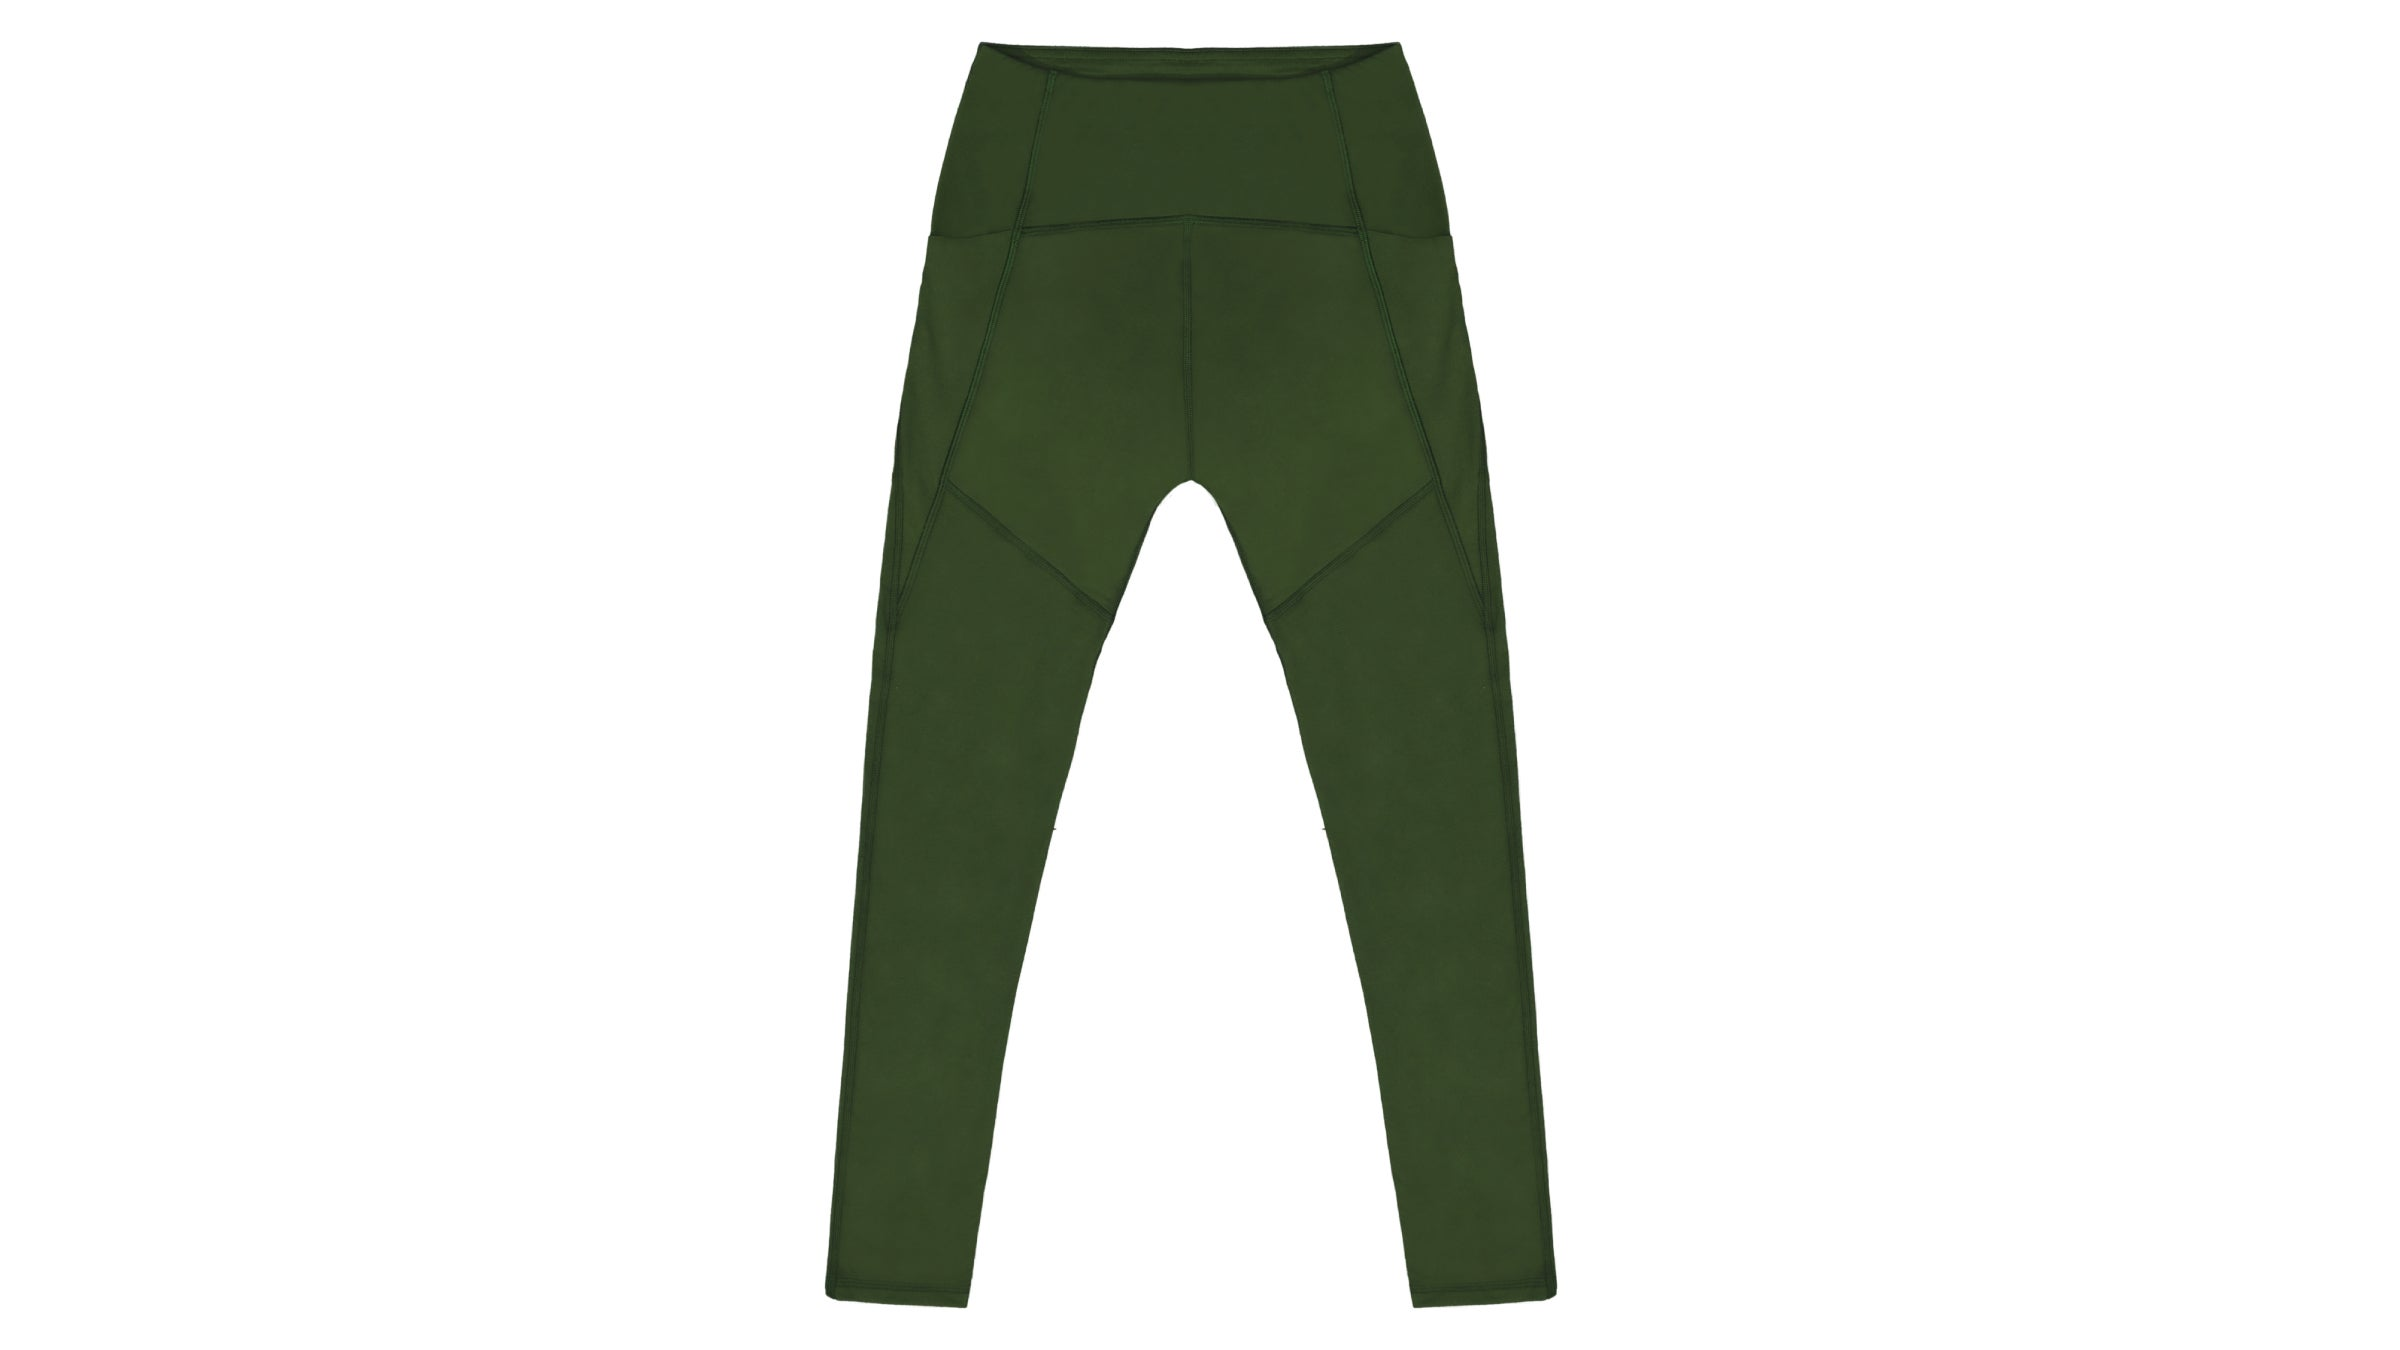 Green Thinx leggings